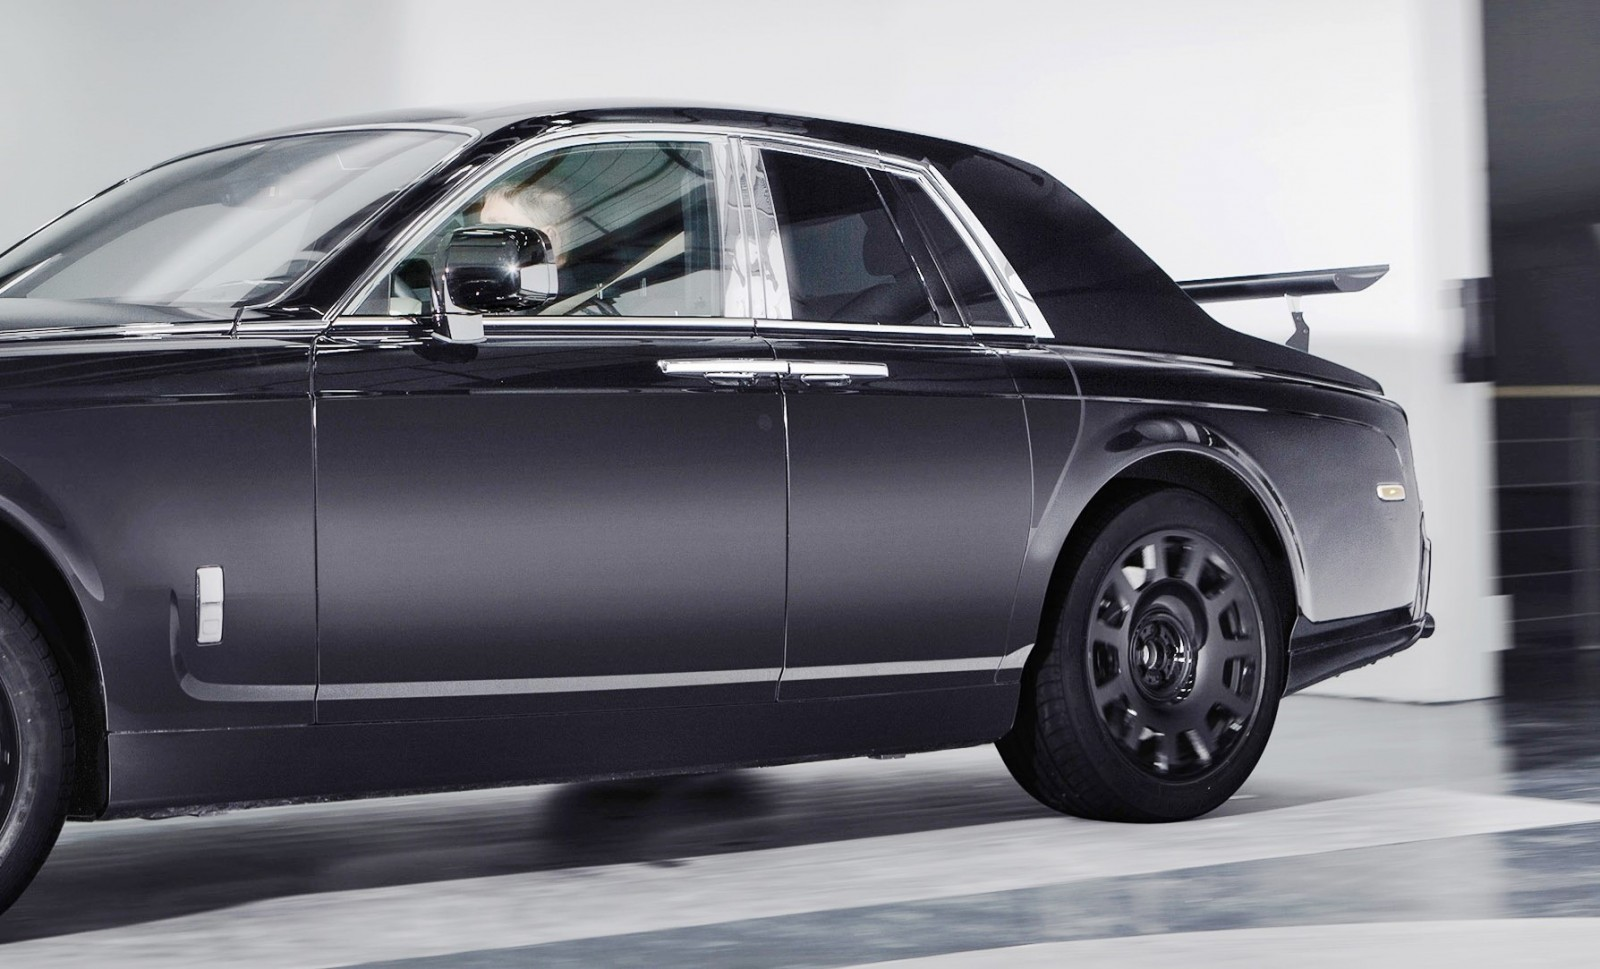 2017 rolls royce suv project callinan test mules 6. Black Bedroom Furniture Sets. Home Design Ideas